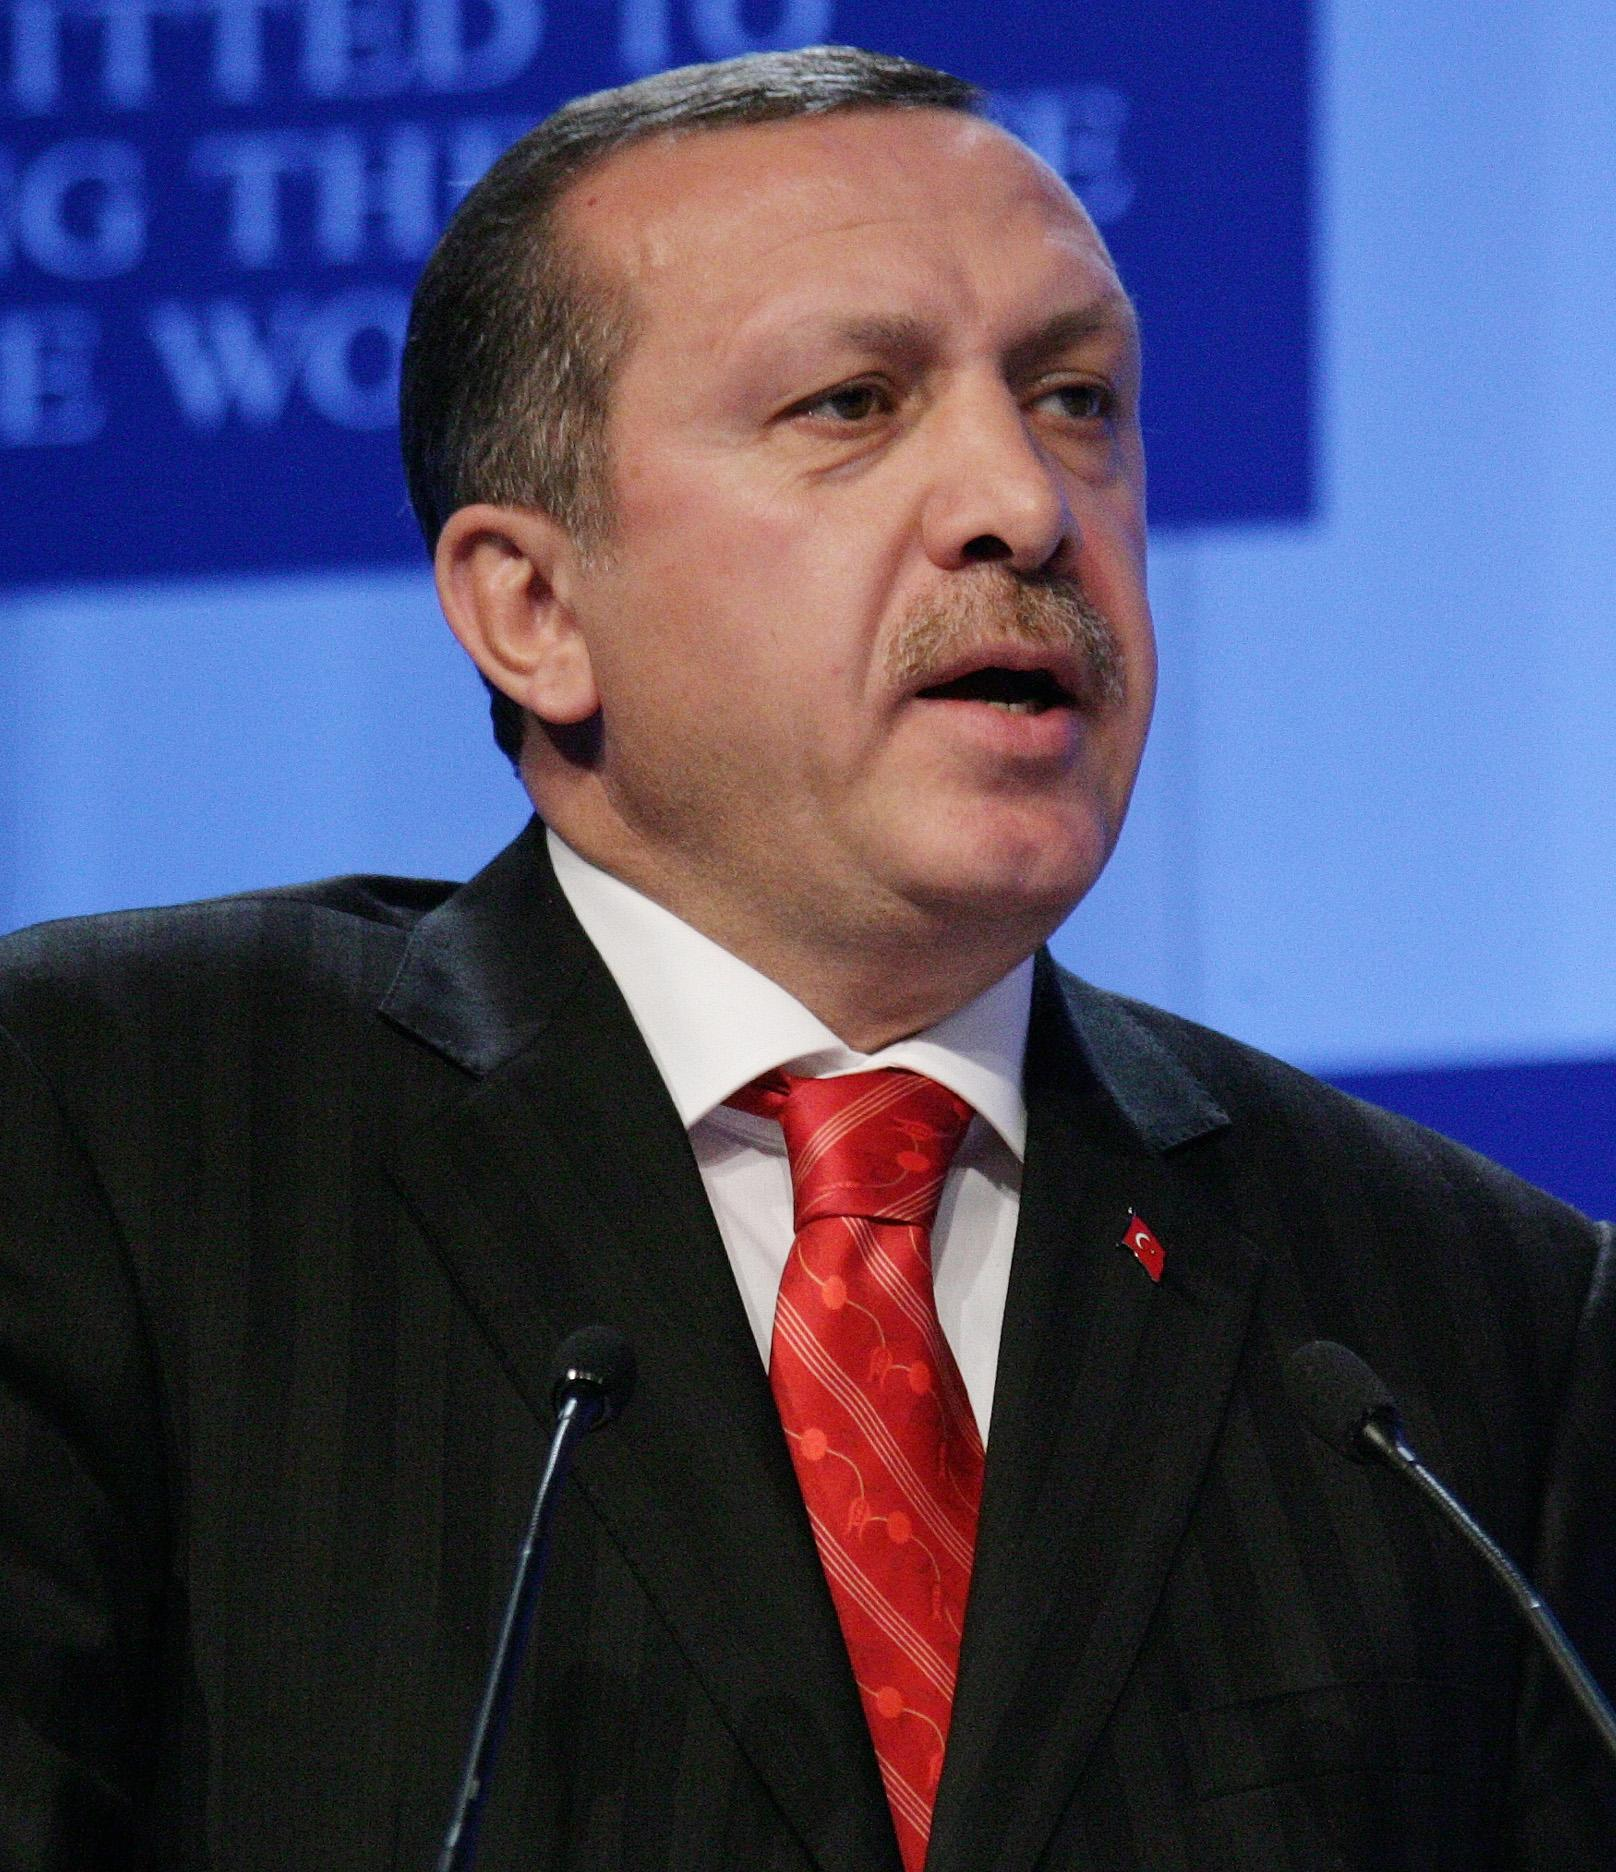 http://upload.wikimedia.org/wikipedia/commons/1/12/Prime_Minister_of_Turkey_Recep_Tayyip_Erdogan_cropped.jpg